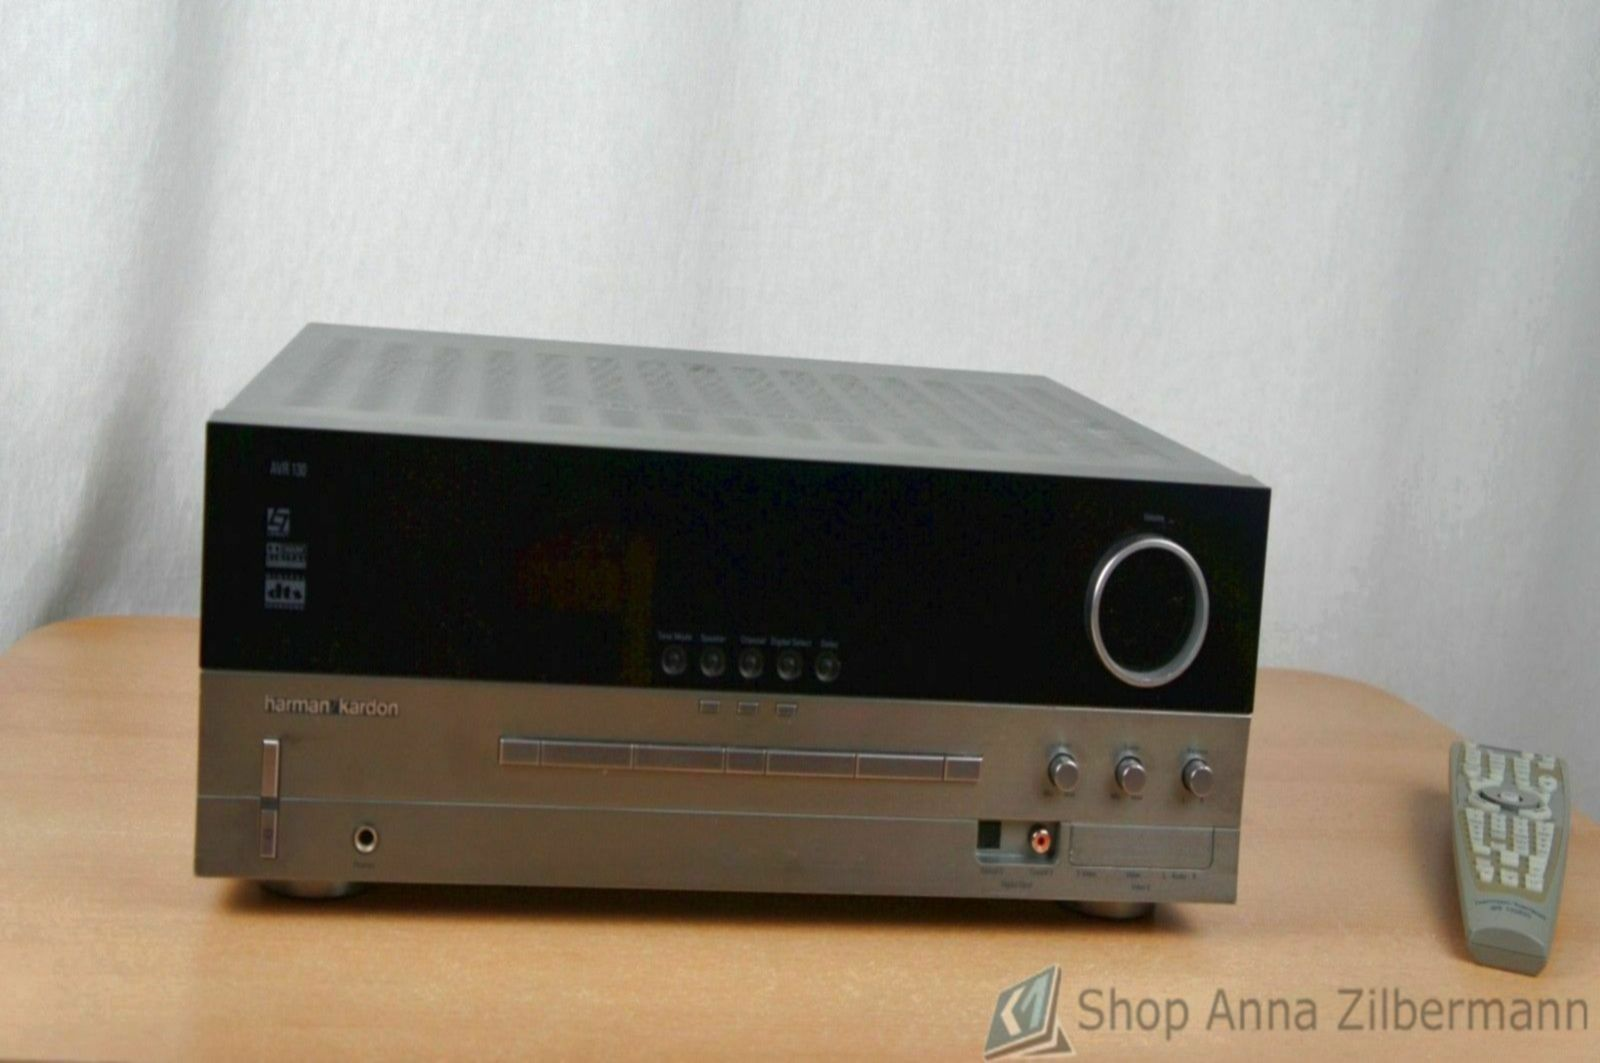 Harman_Kardon_AVR_130_Stereo_Receiver_12